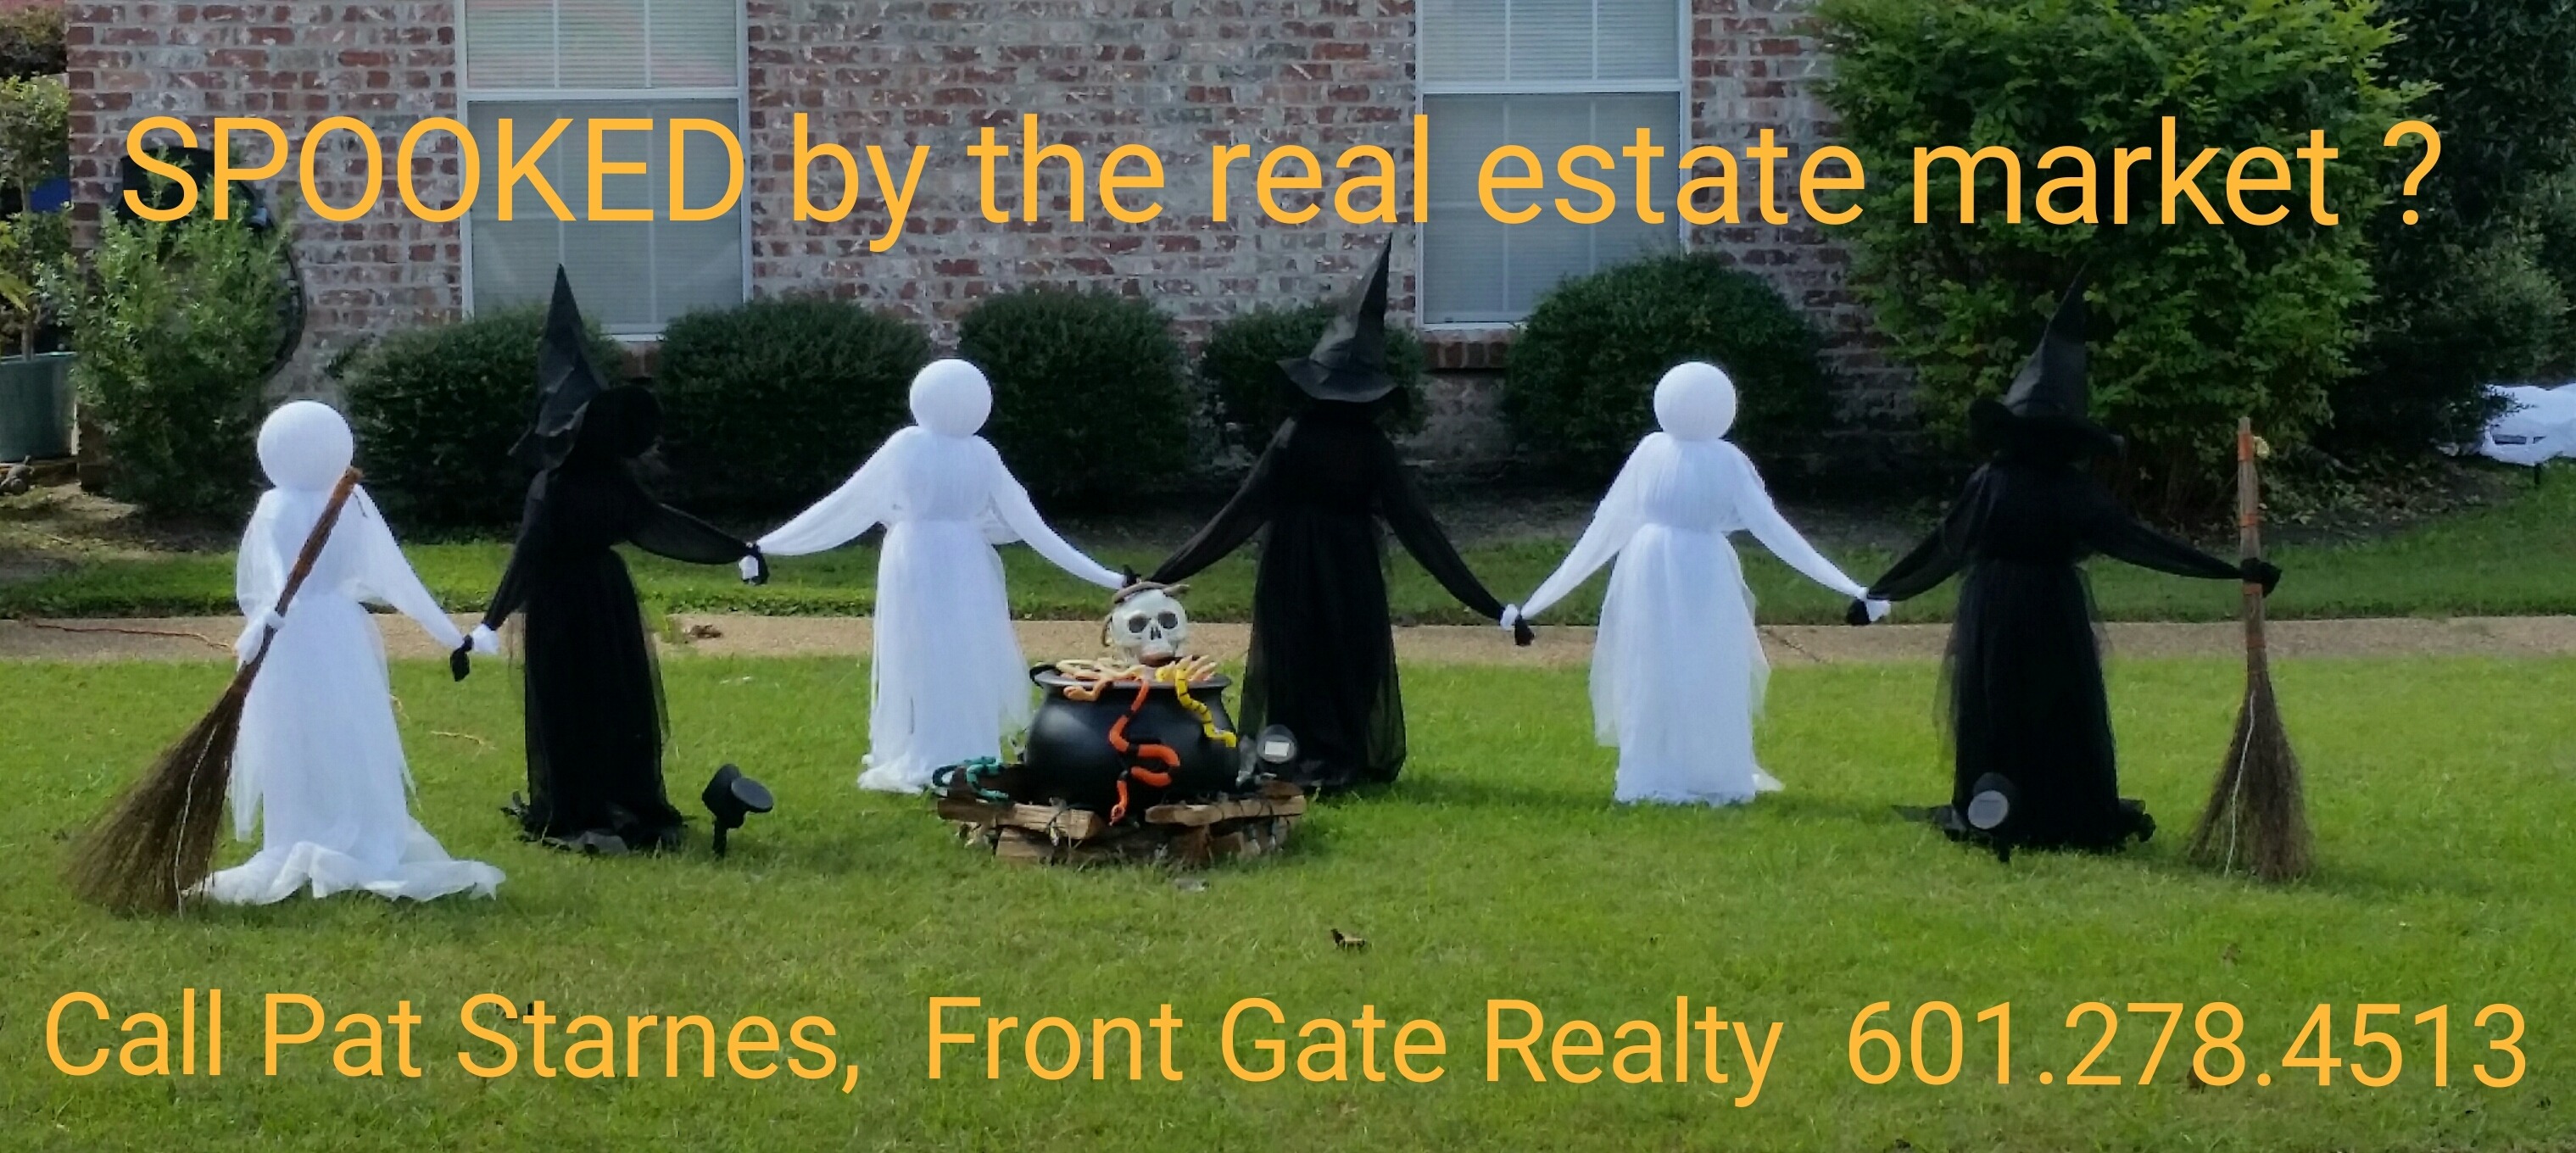 SPOOKED by the real estate market by Pat Starnes